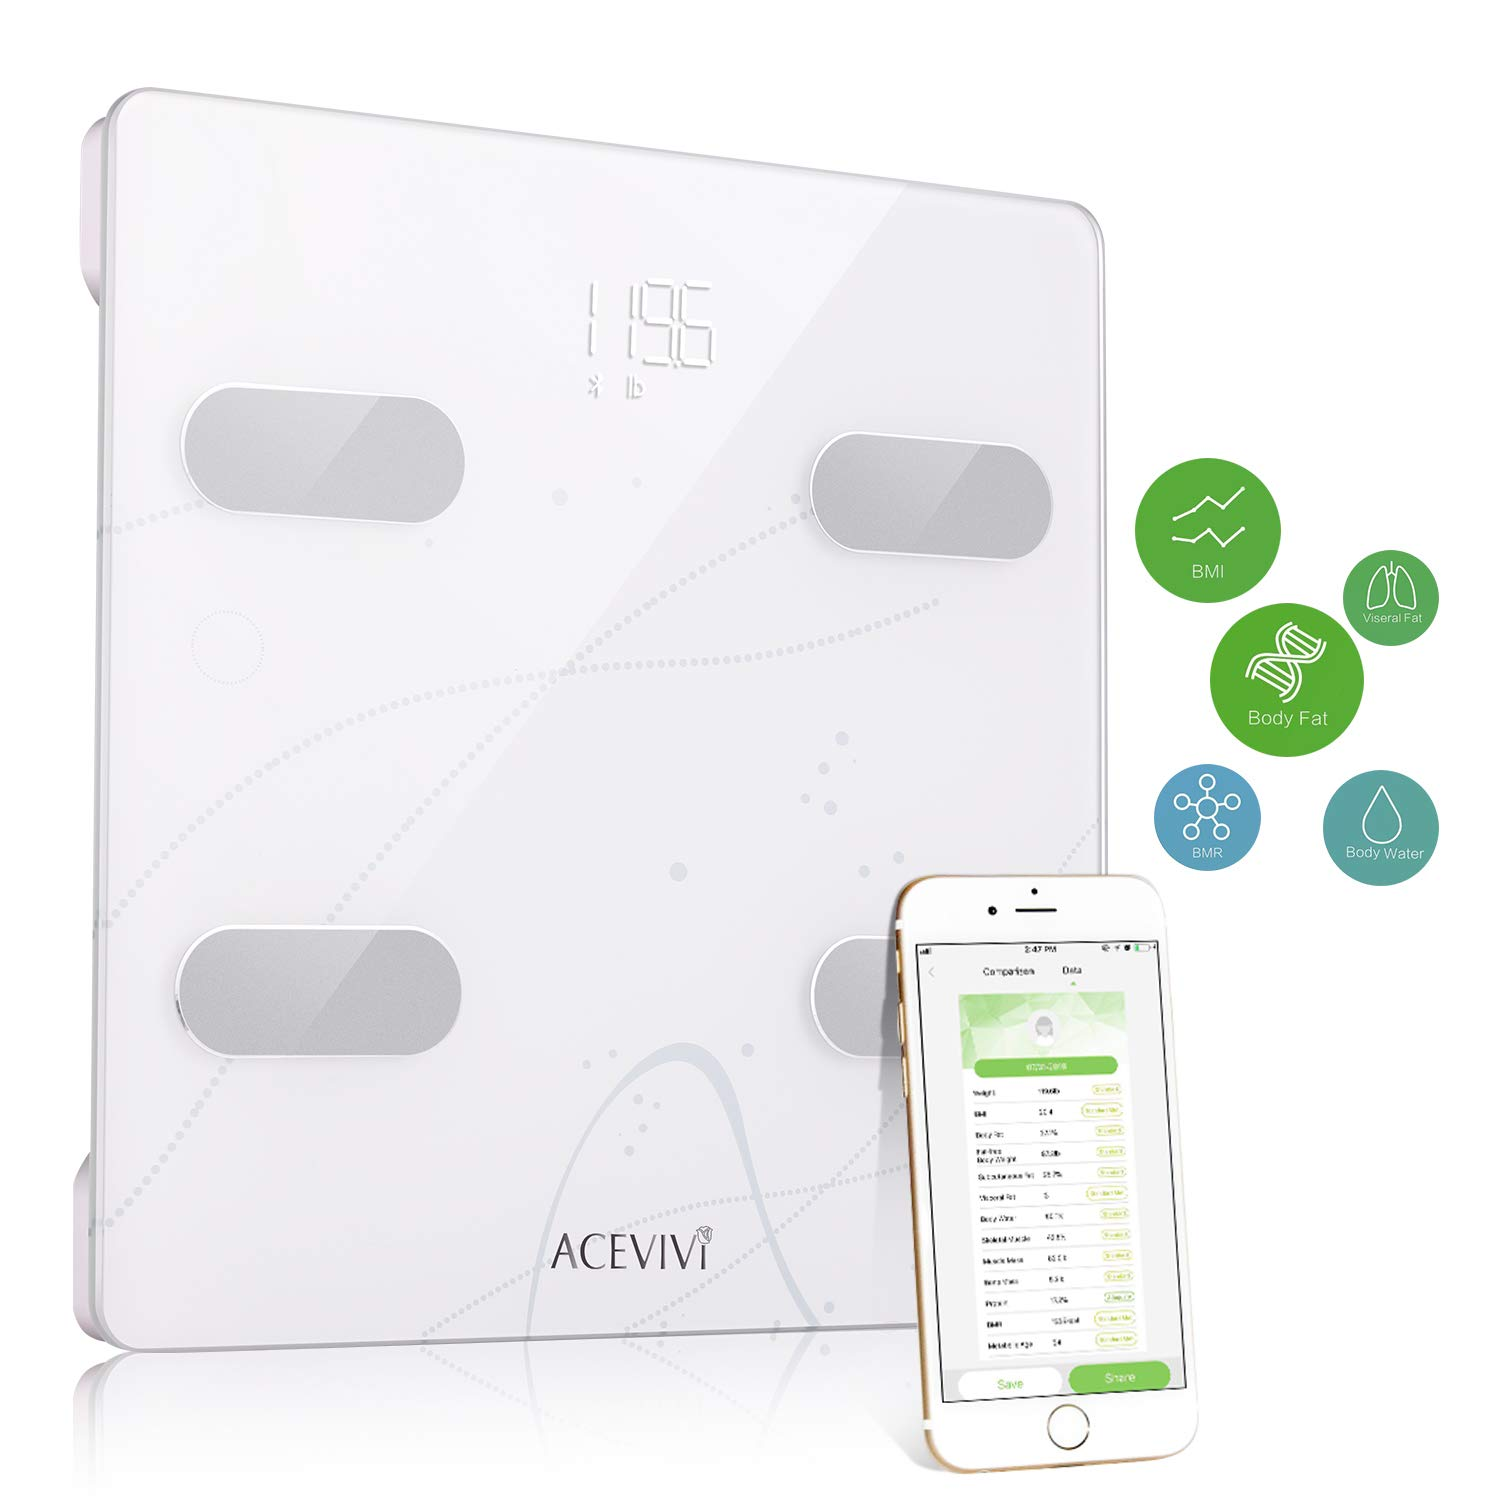 ACEVIVI Weight Body Fat Scale, Digital Bathroom Scale Bluetooth, Smart BMI Scale Body Composition Analyzer with Smartphone App - 13 Essential Measurements (white1)